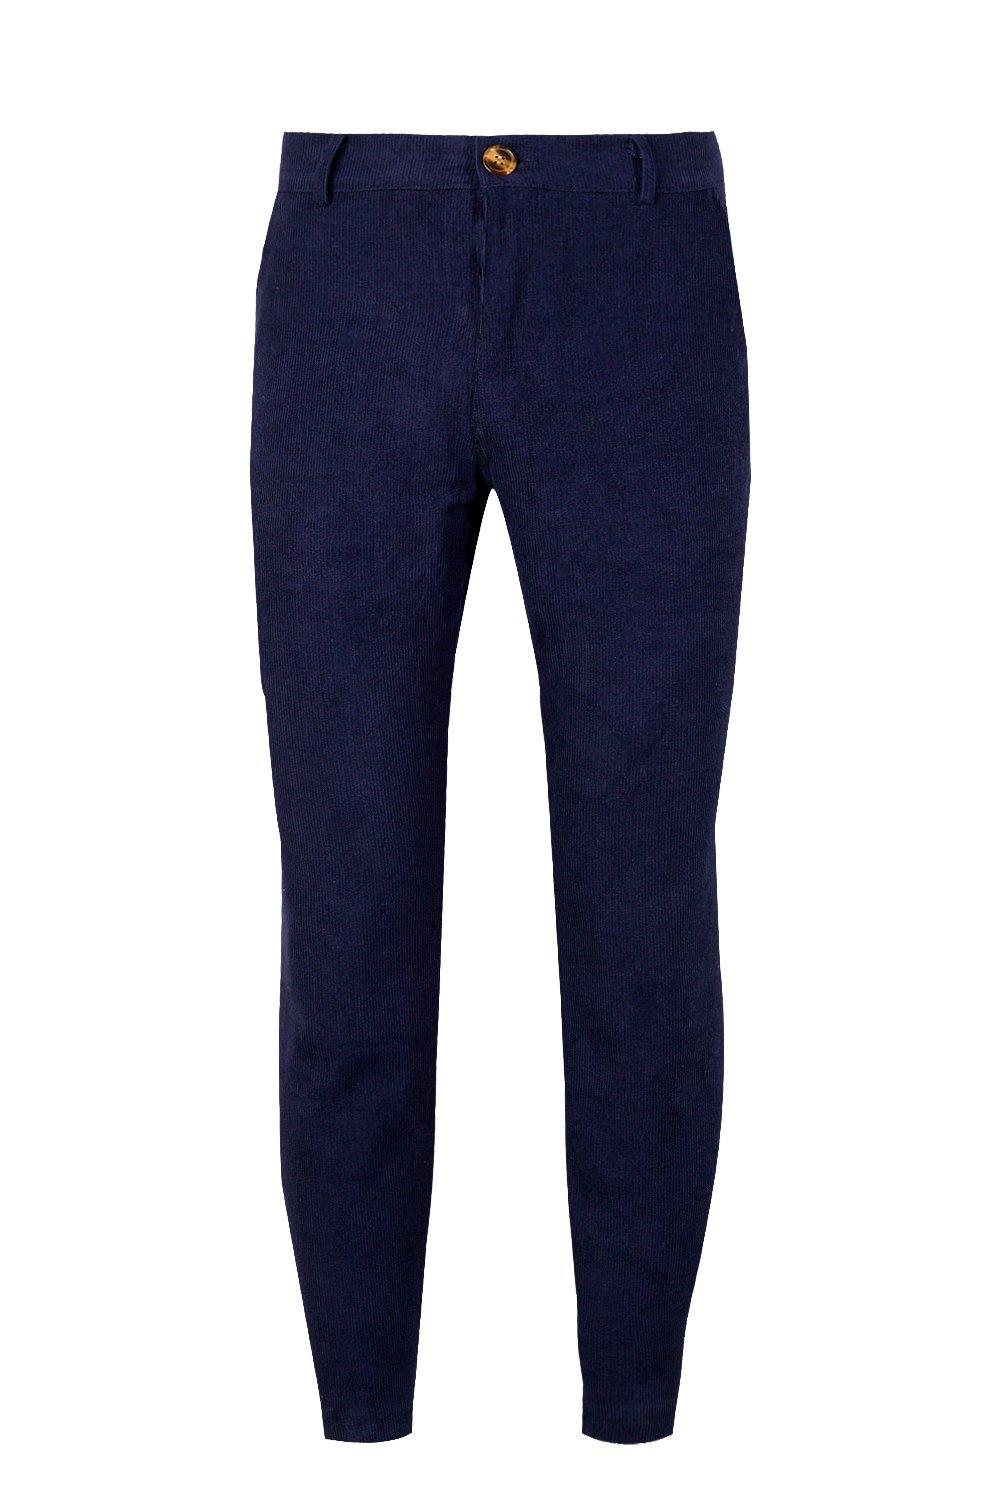 Fit Slim navy Cord Fit Trouser Fit navy Cord Slim Trouser Slim xFdnSqI6Iw